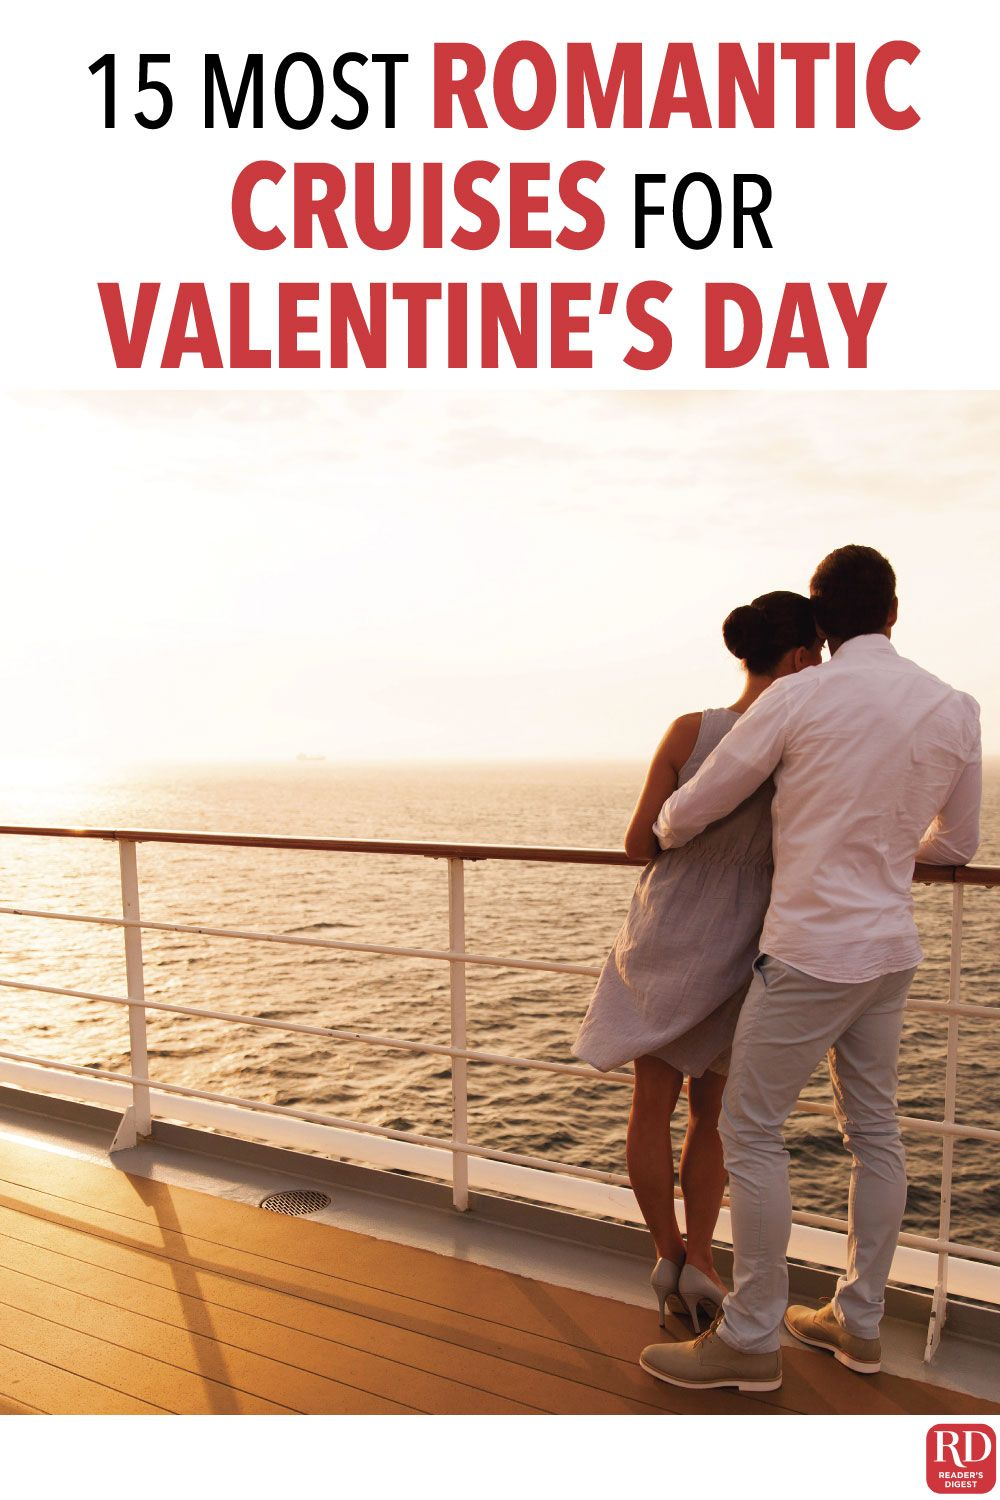 10 Most Romantic Cruises for Valentine's Day in 2020 ...